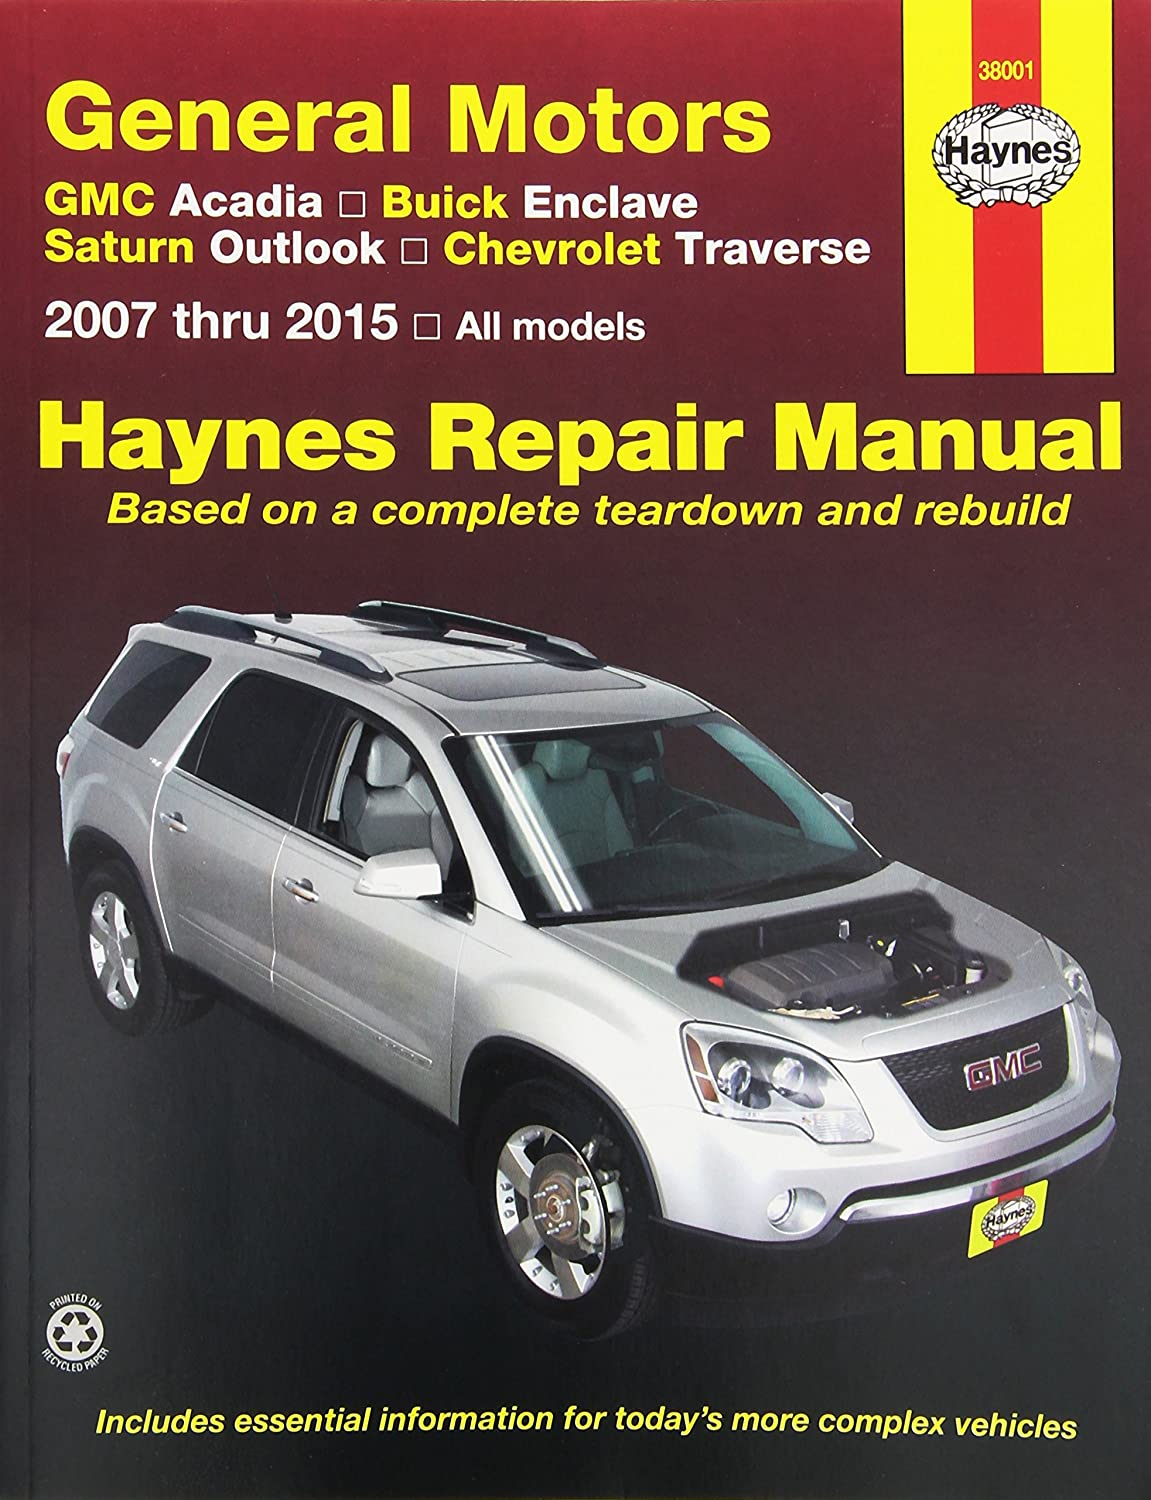 Amazon.com: Haynes Repair Manual covering GMC Acadia (2007-2013), Buick  Enclave (2008-2013), Saturn Outlook (2007-2010) and Chevrolet Traverse  (2009-2013) ...